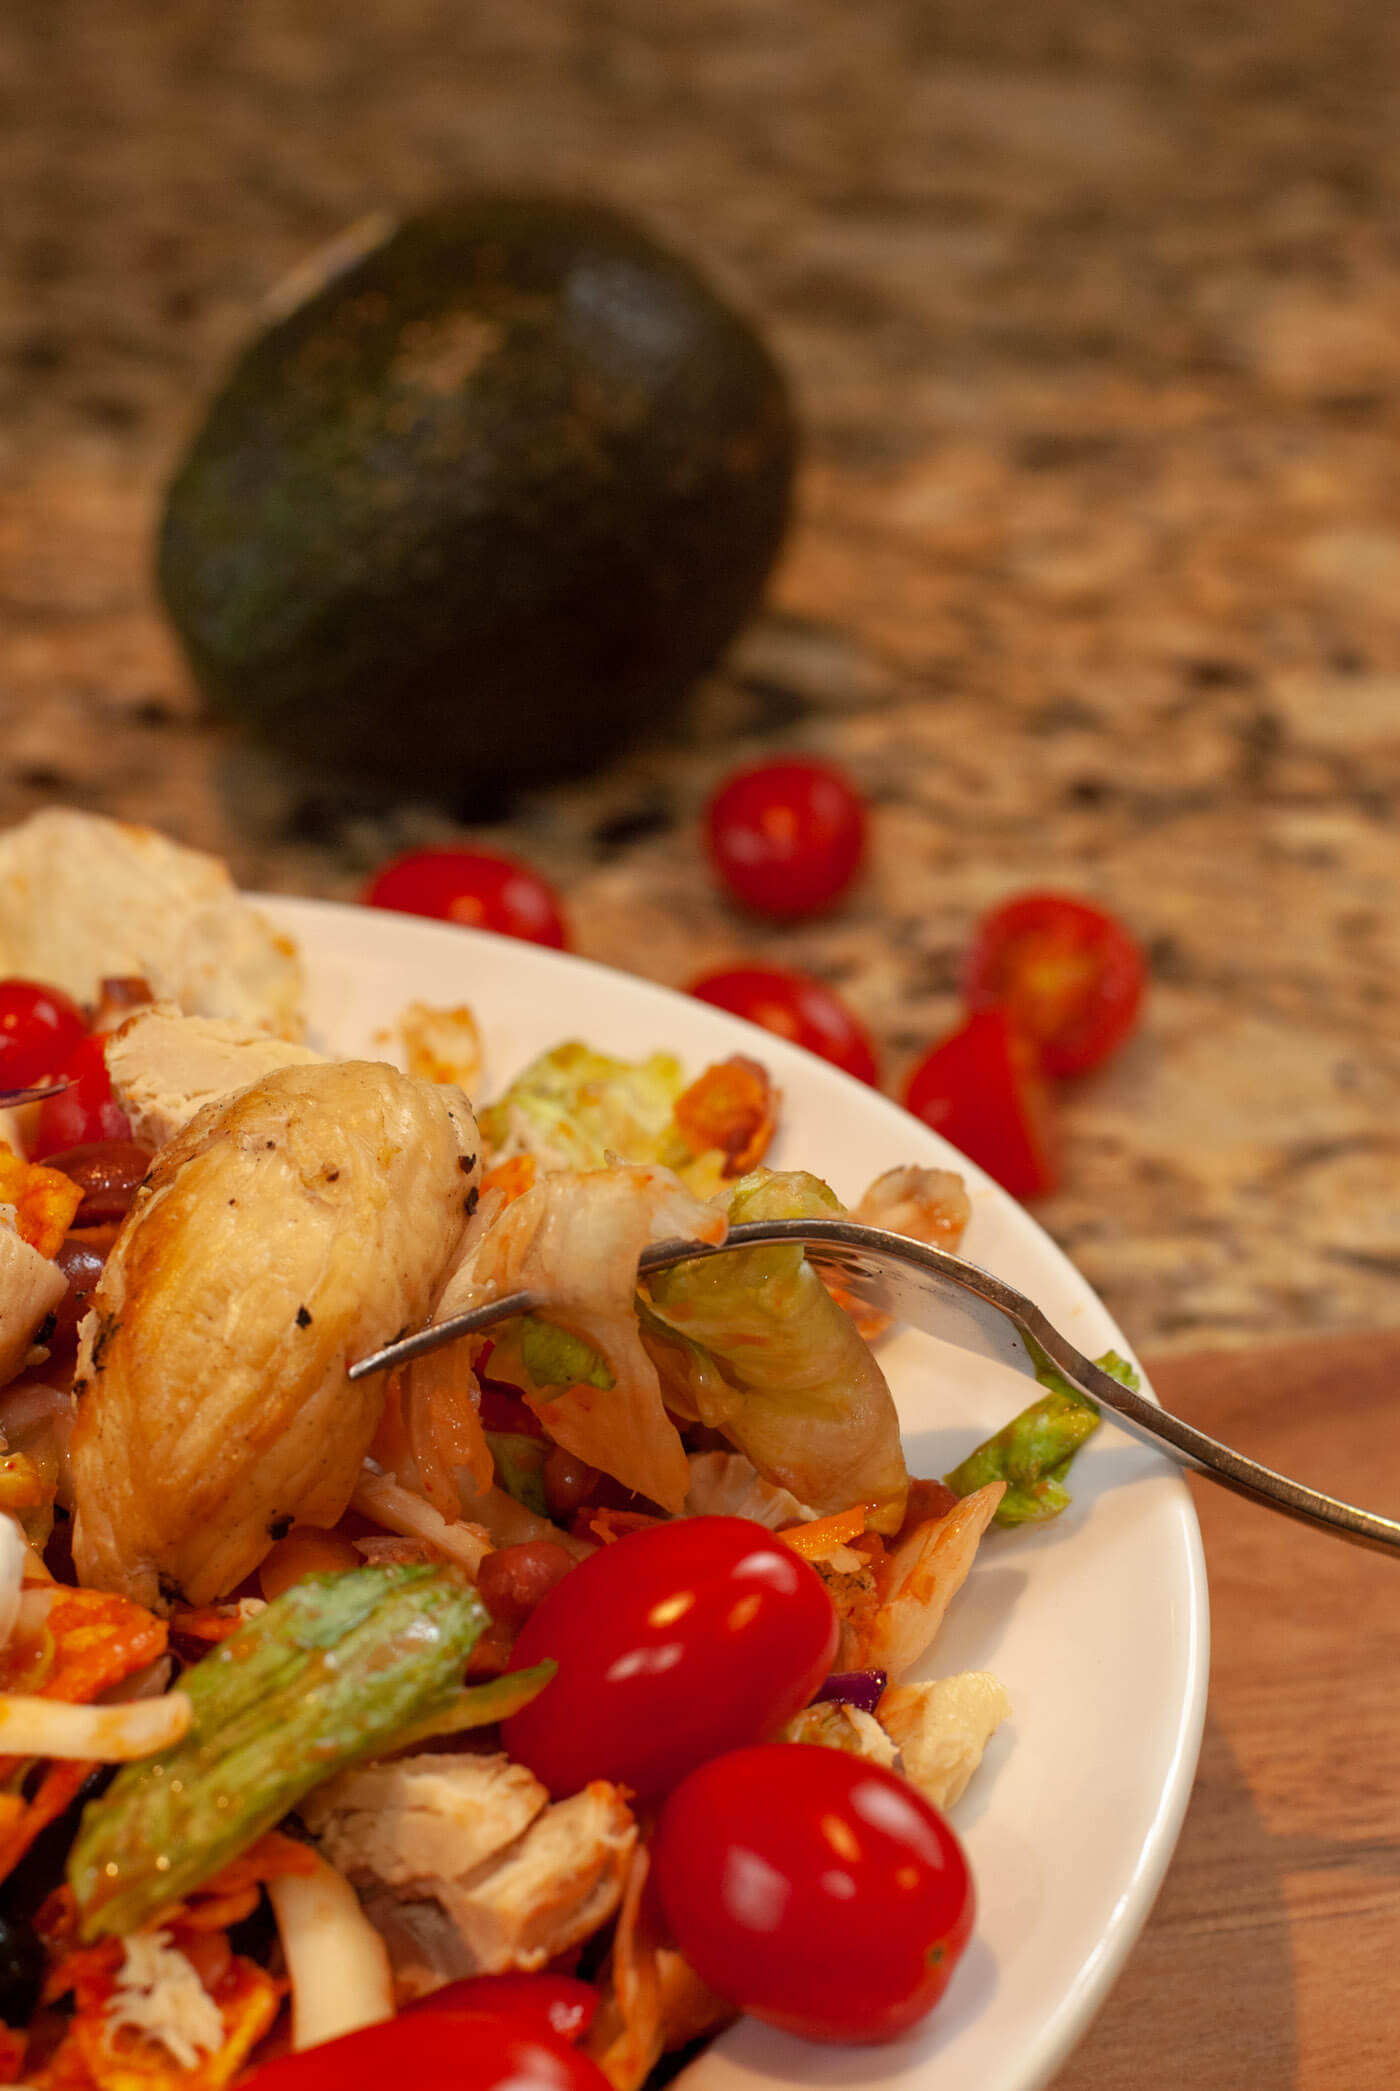 Grilled Chicken Dorito Taco Salad with Tomatoes and Avocado